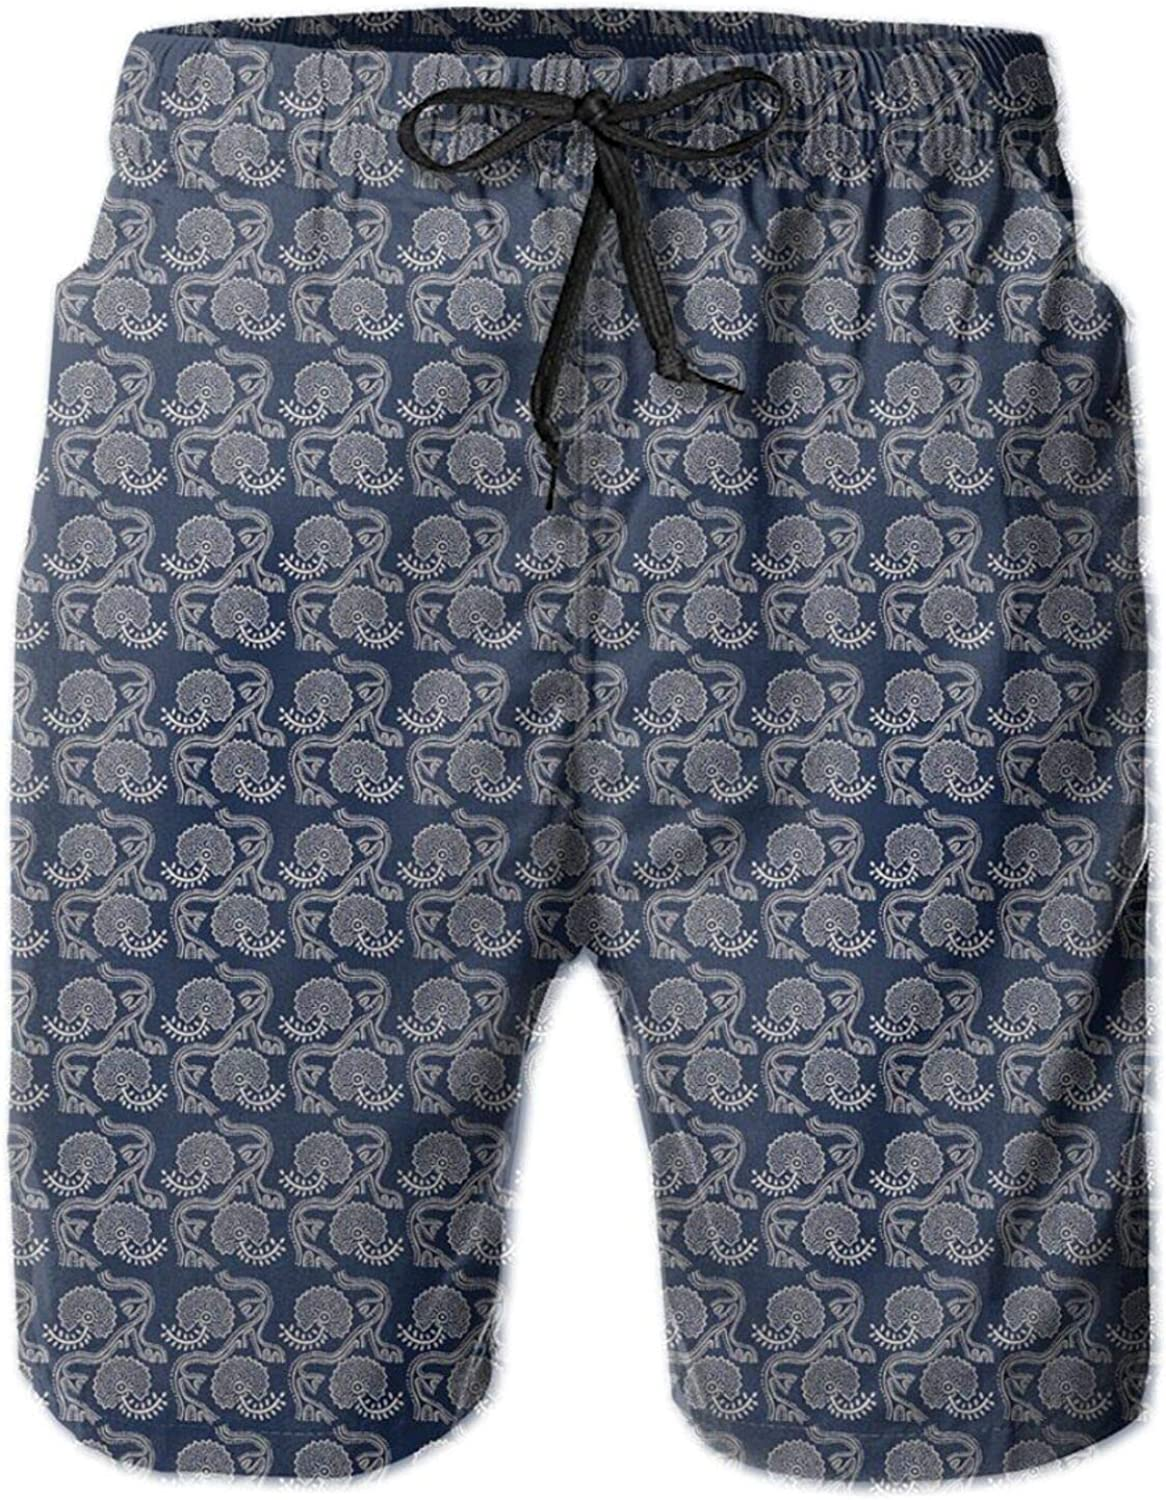 Floral Dotted Artwork Pattern with Ethnic Russian Spring Blooms Mens Swim Trucks Shorts with Mesh Lining,M